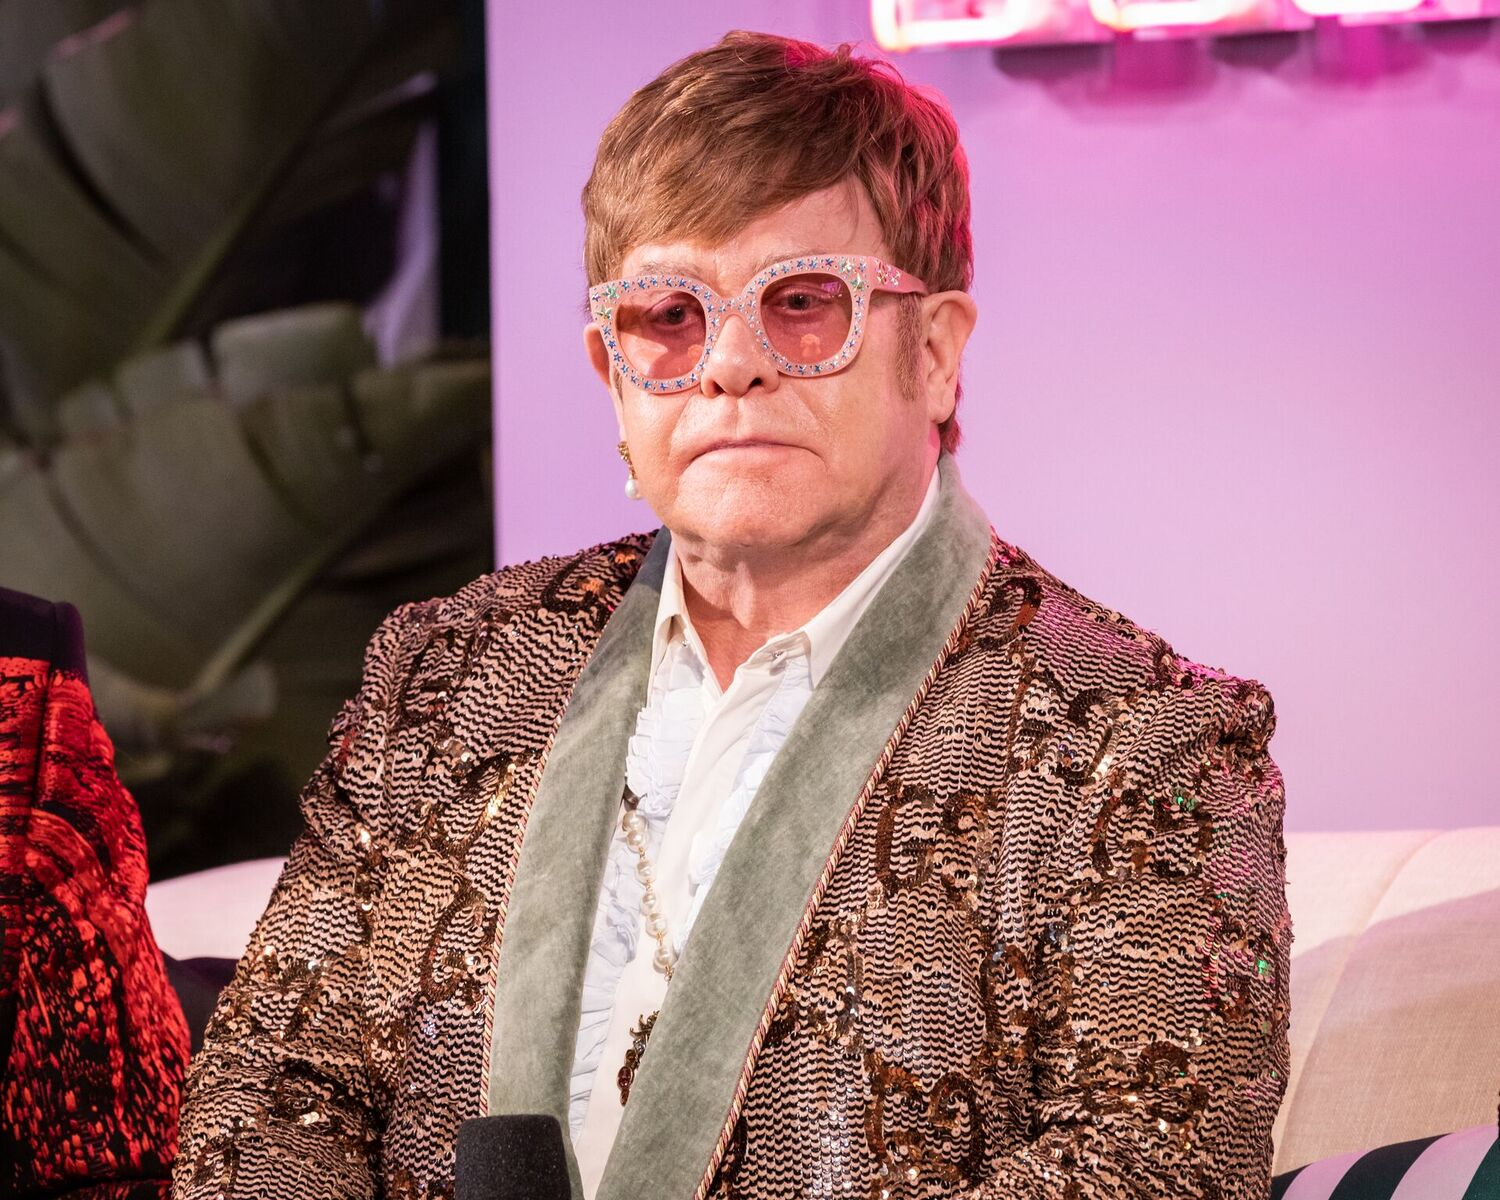 Elton John attends IMDb LIVE At The Elton John AIDS Foundation Academy Awards® Viewing Party on February 24, 2019 in Los Angeles, California | Photo: Getty Images